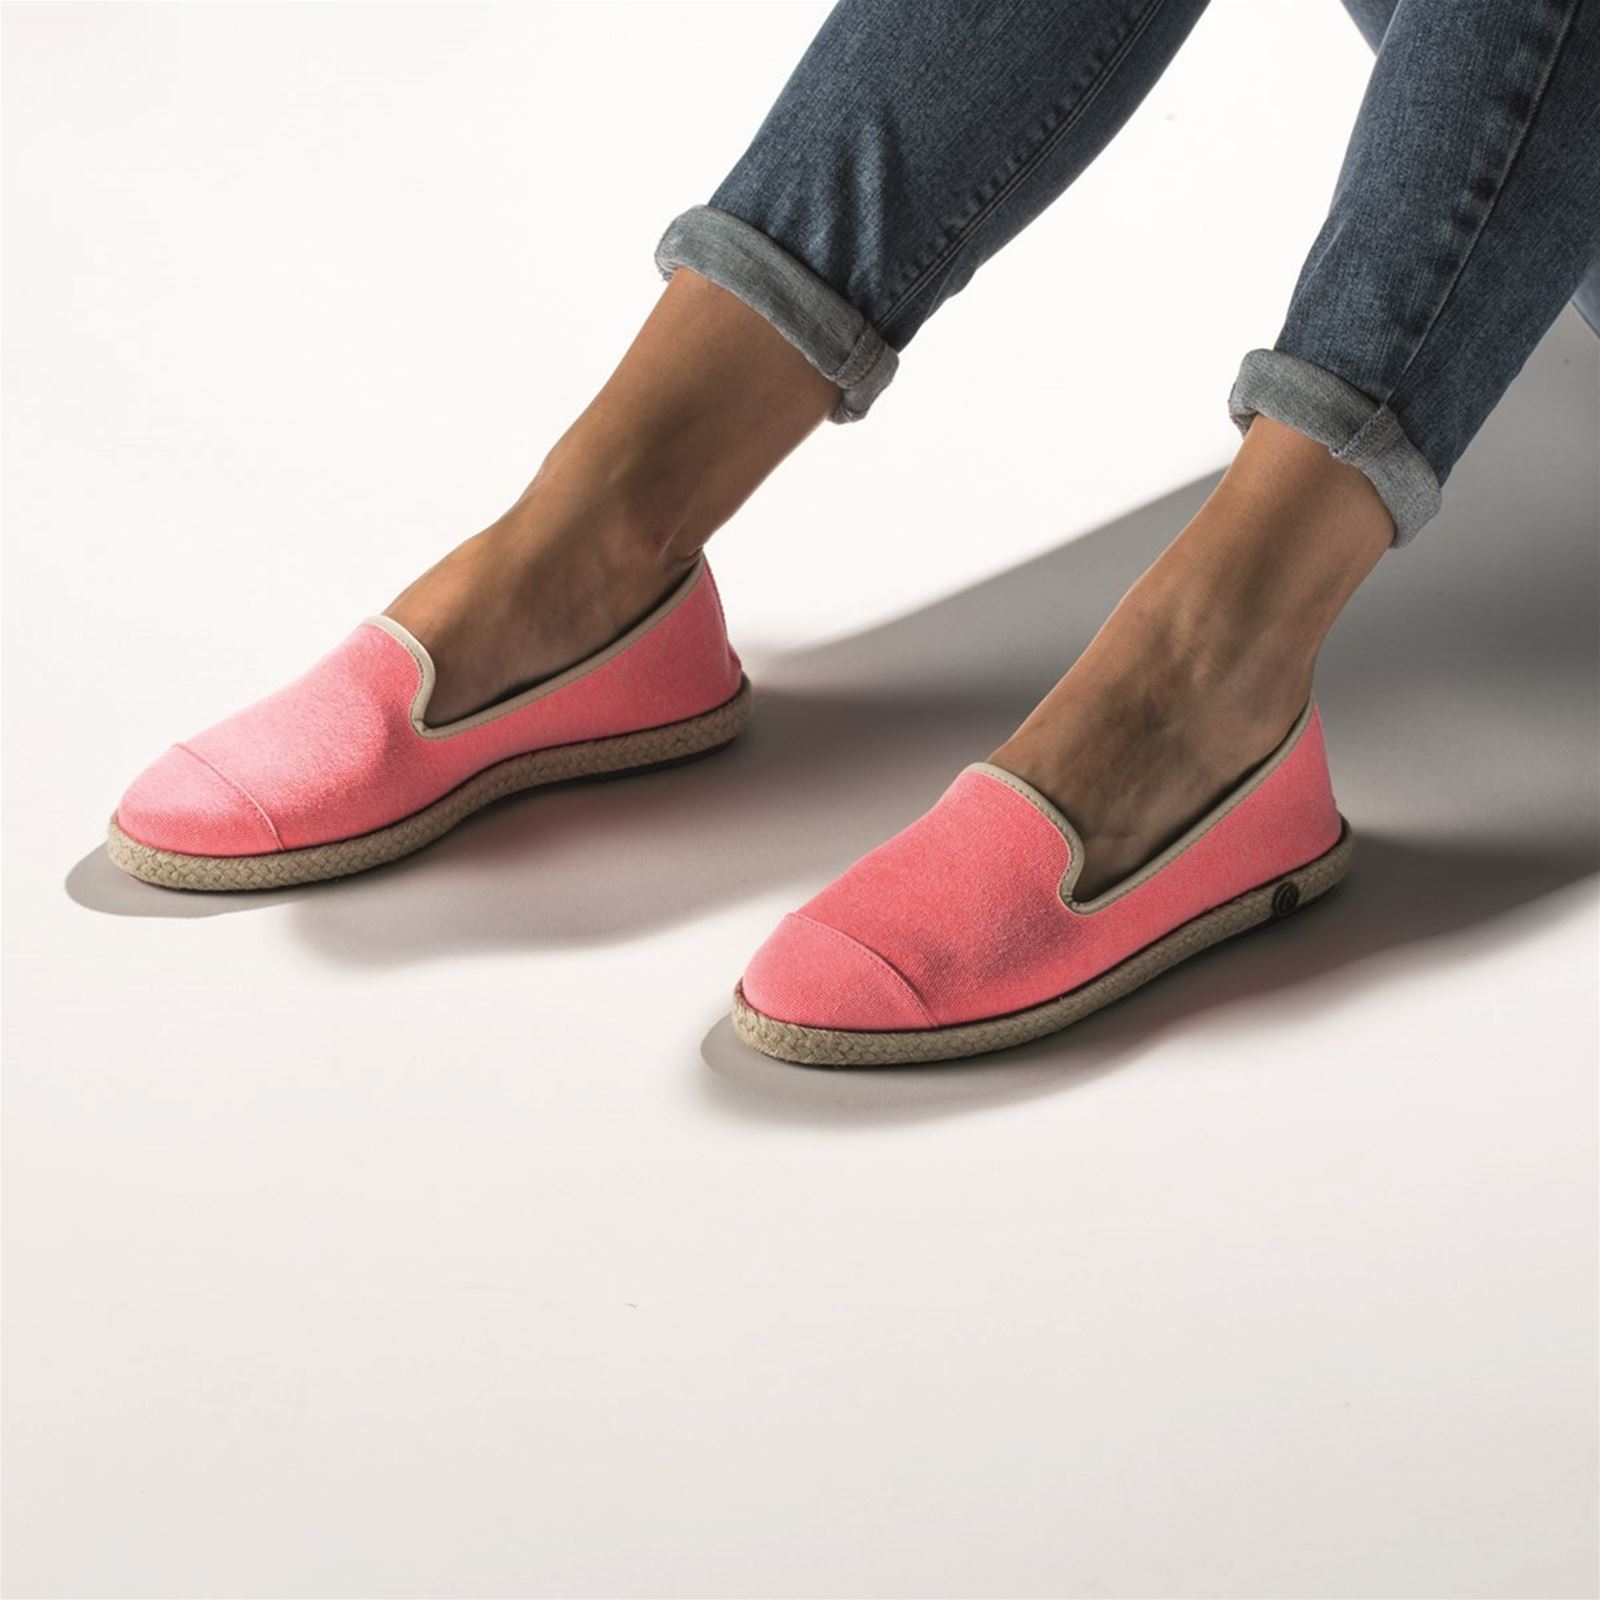 Espadrilles waterproof Fluo Angarde